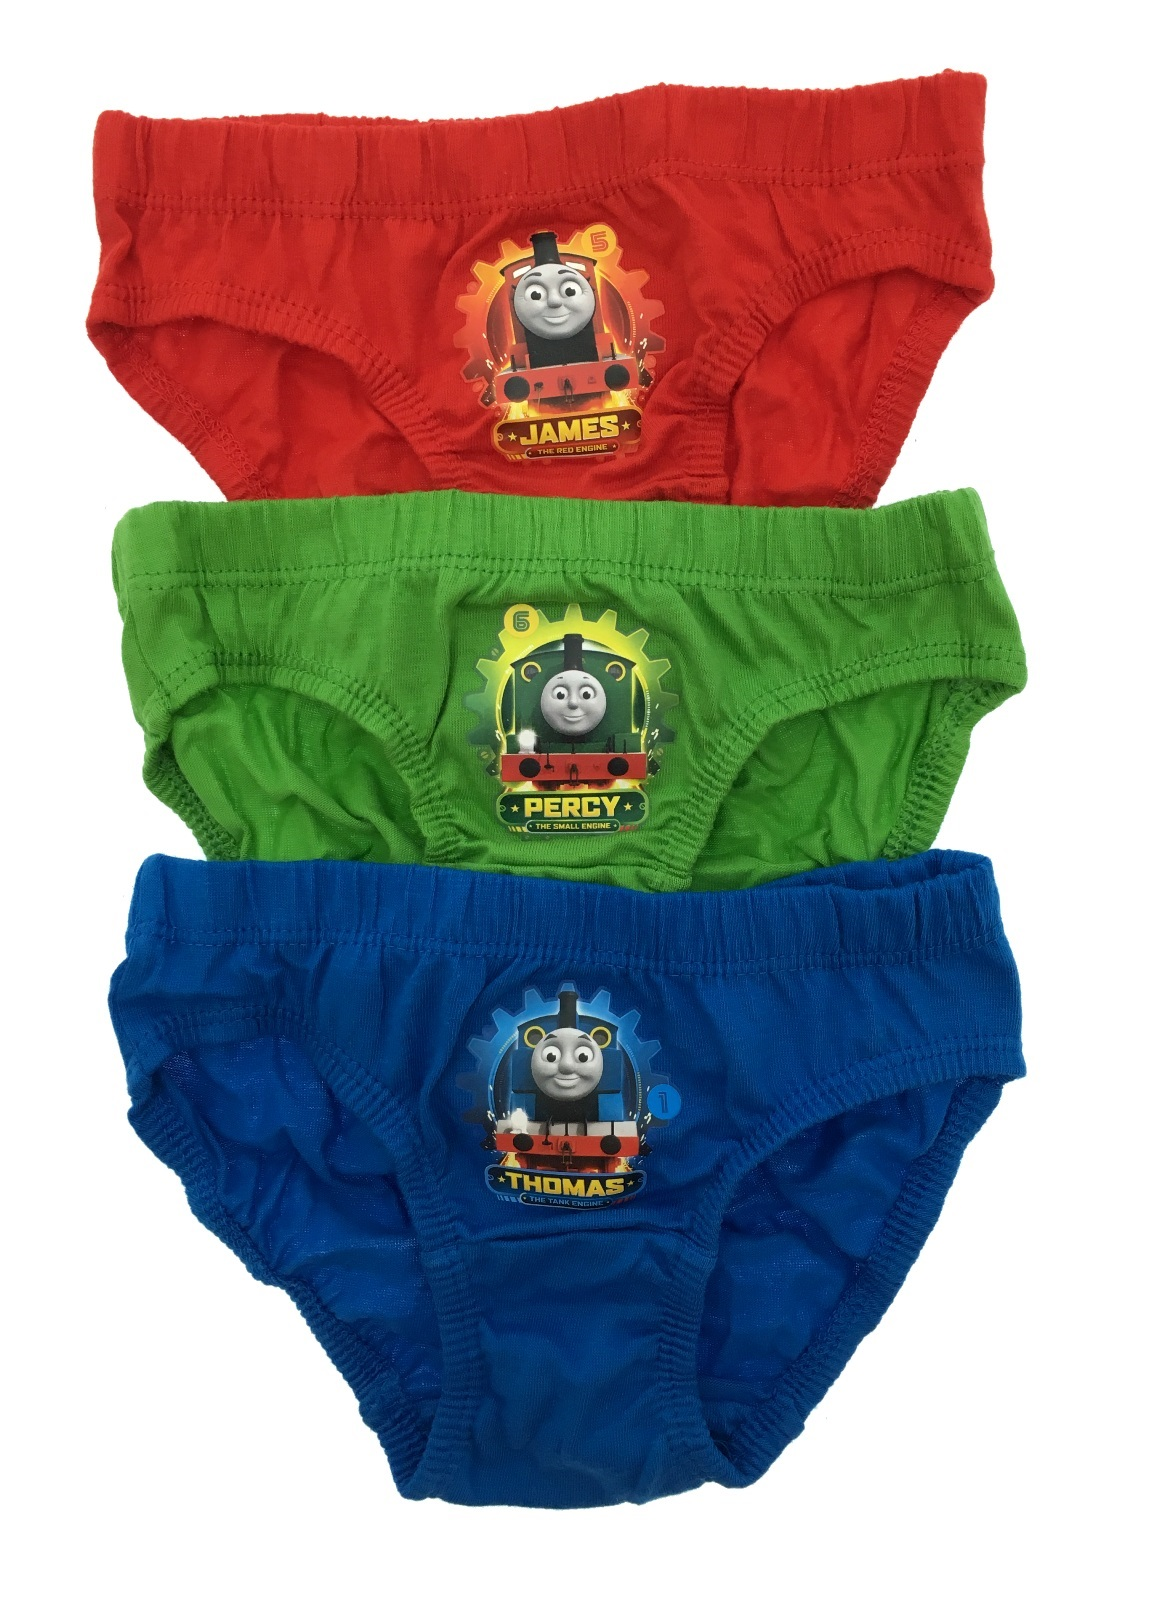 Espoy Boys Underwear Briefs Boxer Shorts Car Truck % Cotton Elasticated Waist Kids Character Underpants Trunks £ - £ Prime 4 out of 5 stars